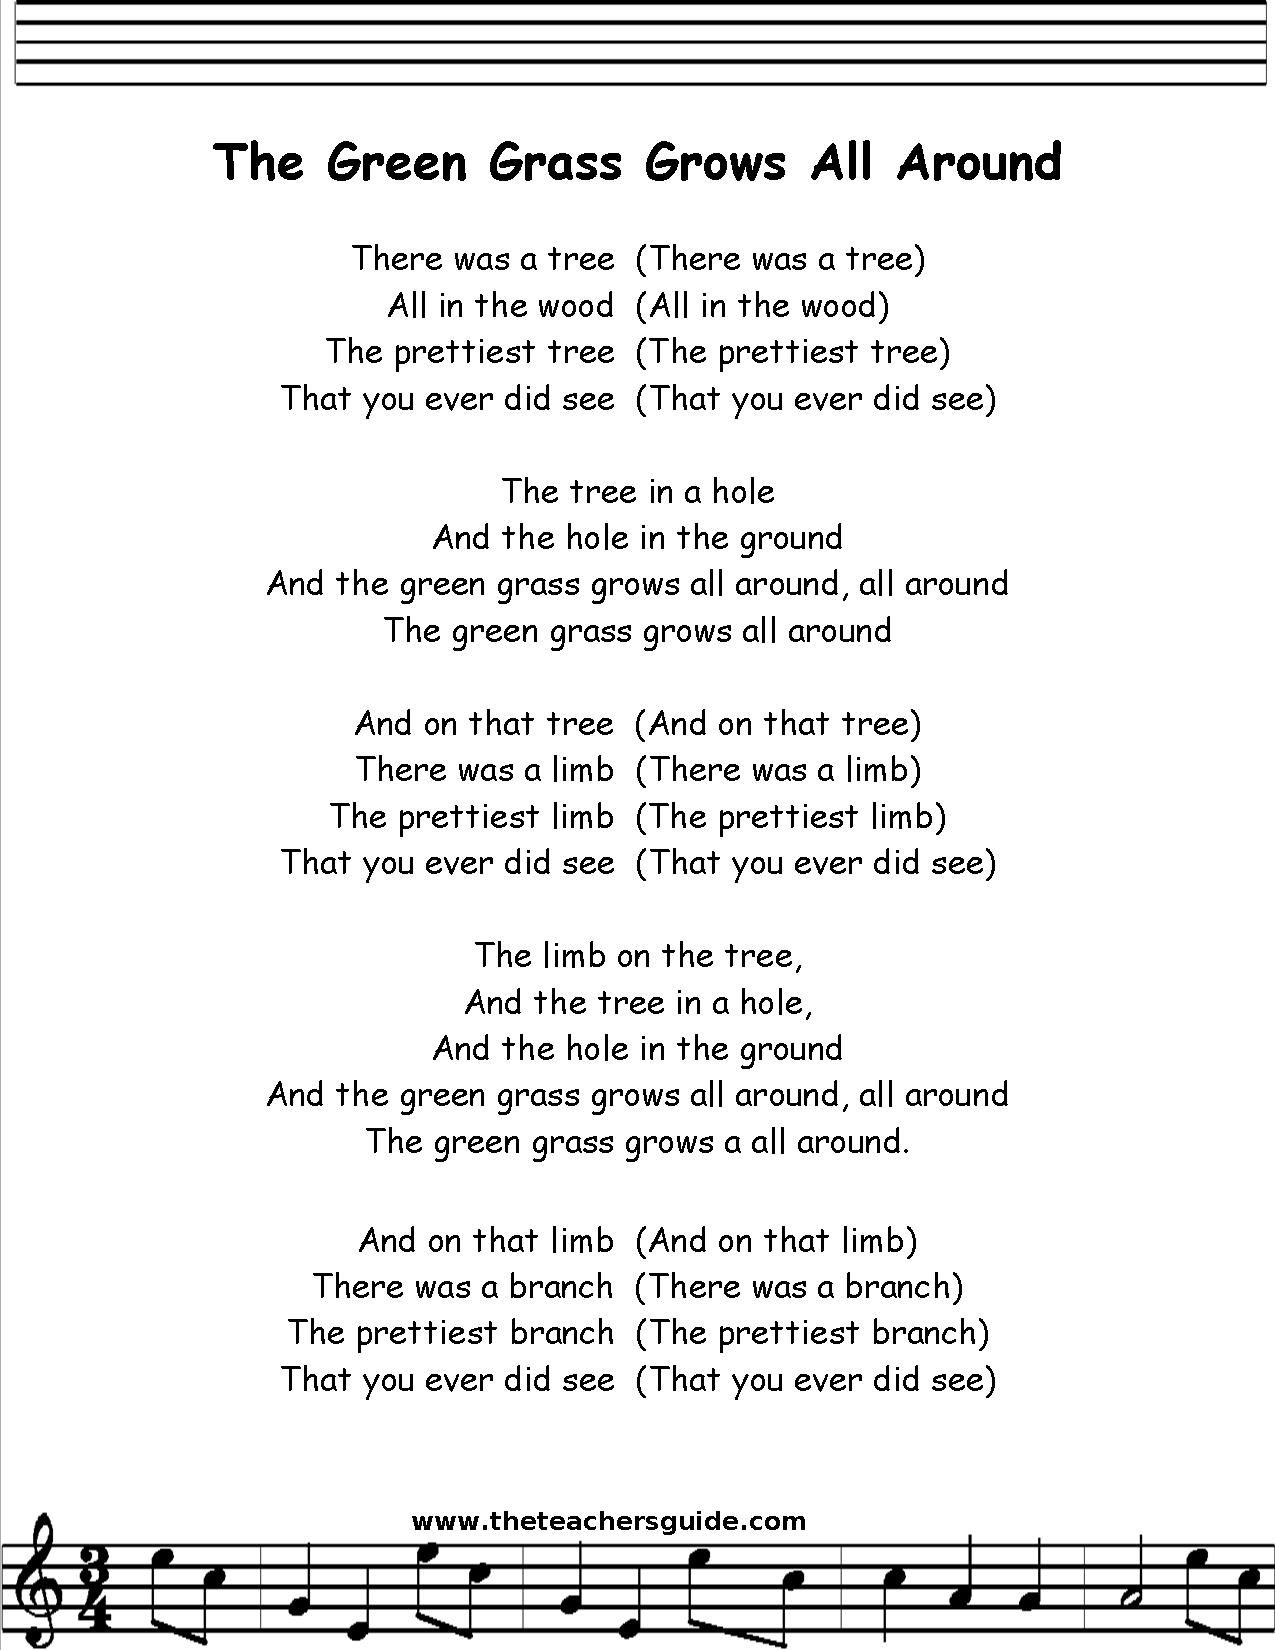 Green Grass Grows All Around Lyrics Printout